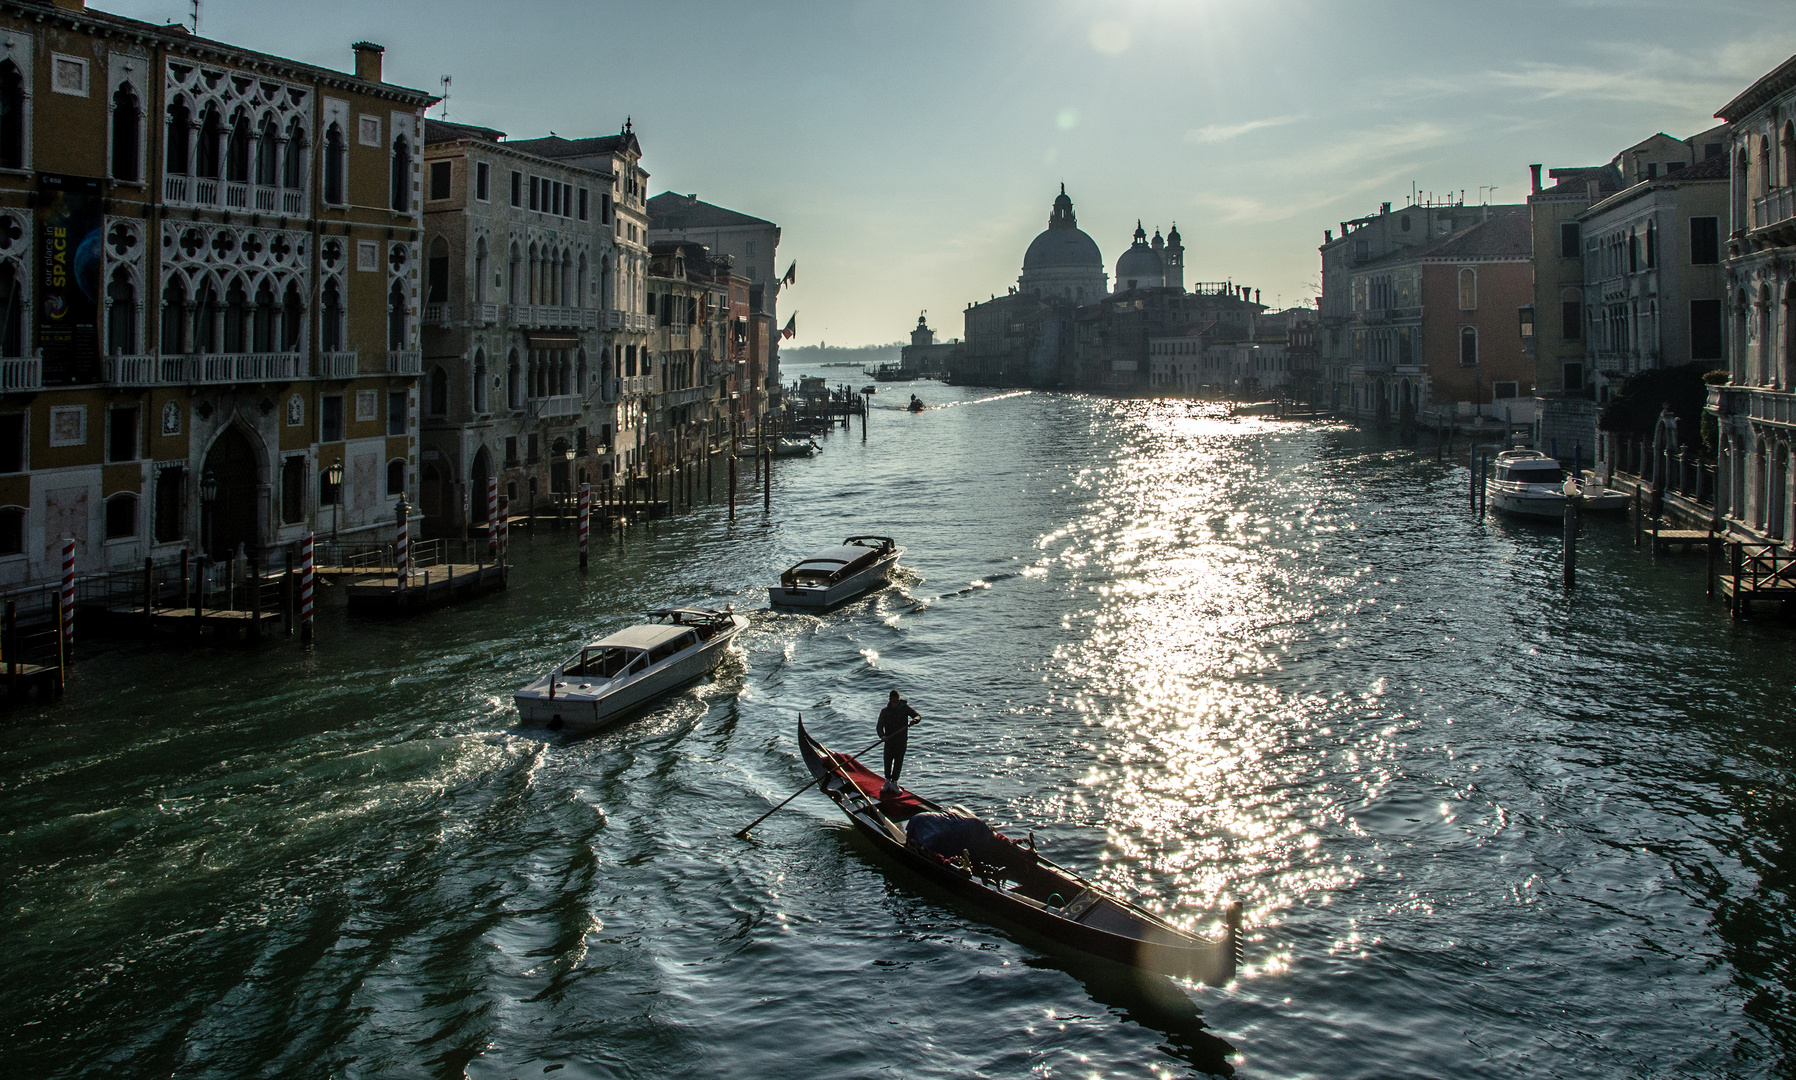 Venice - Canal Grande with Gondola